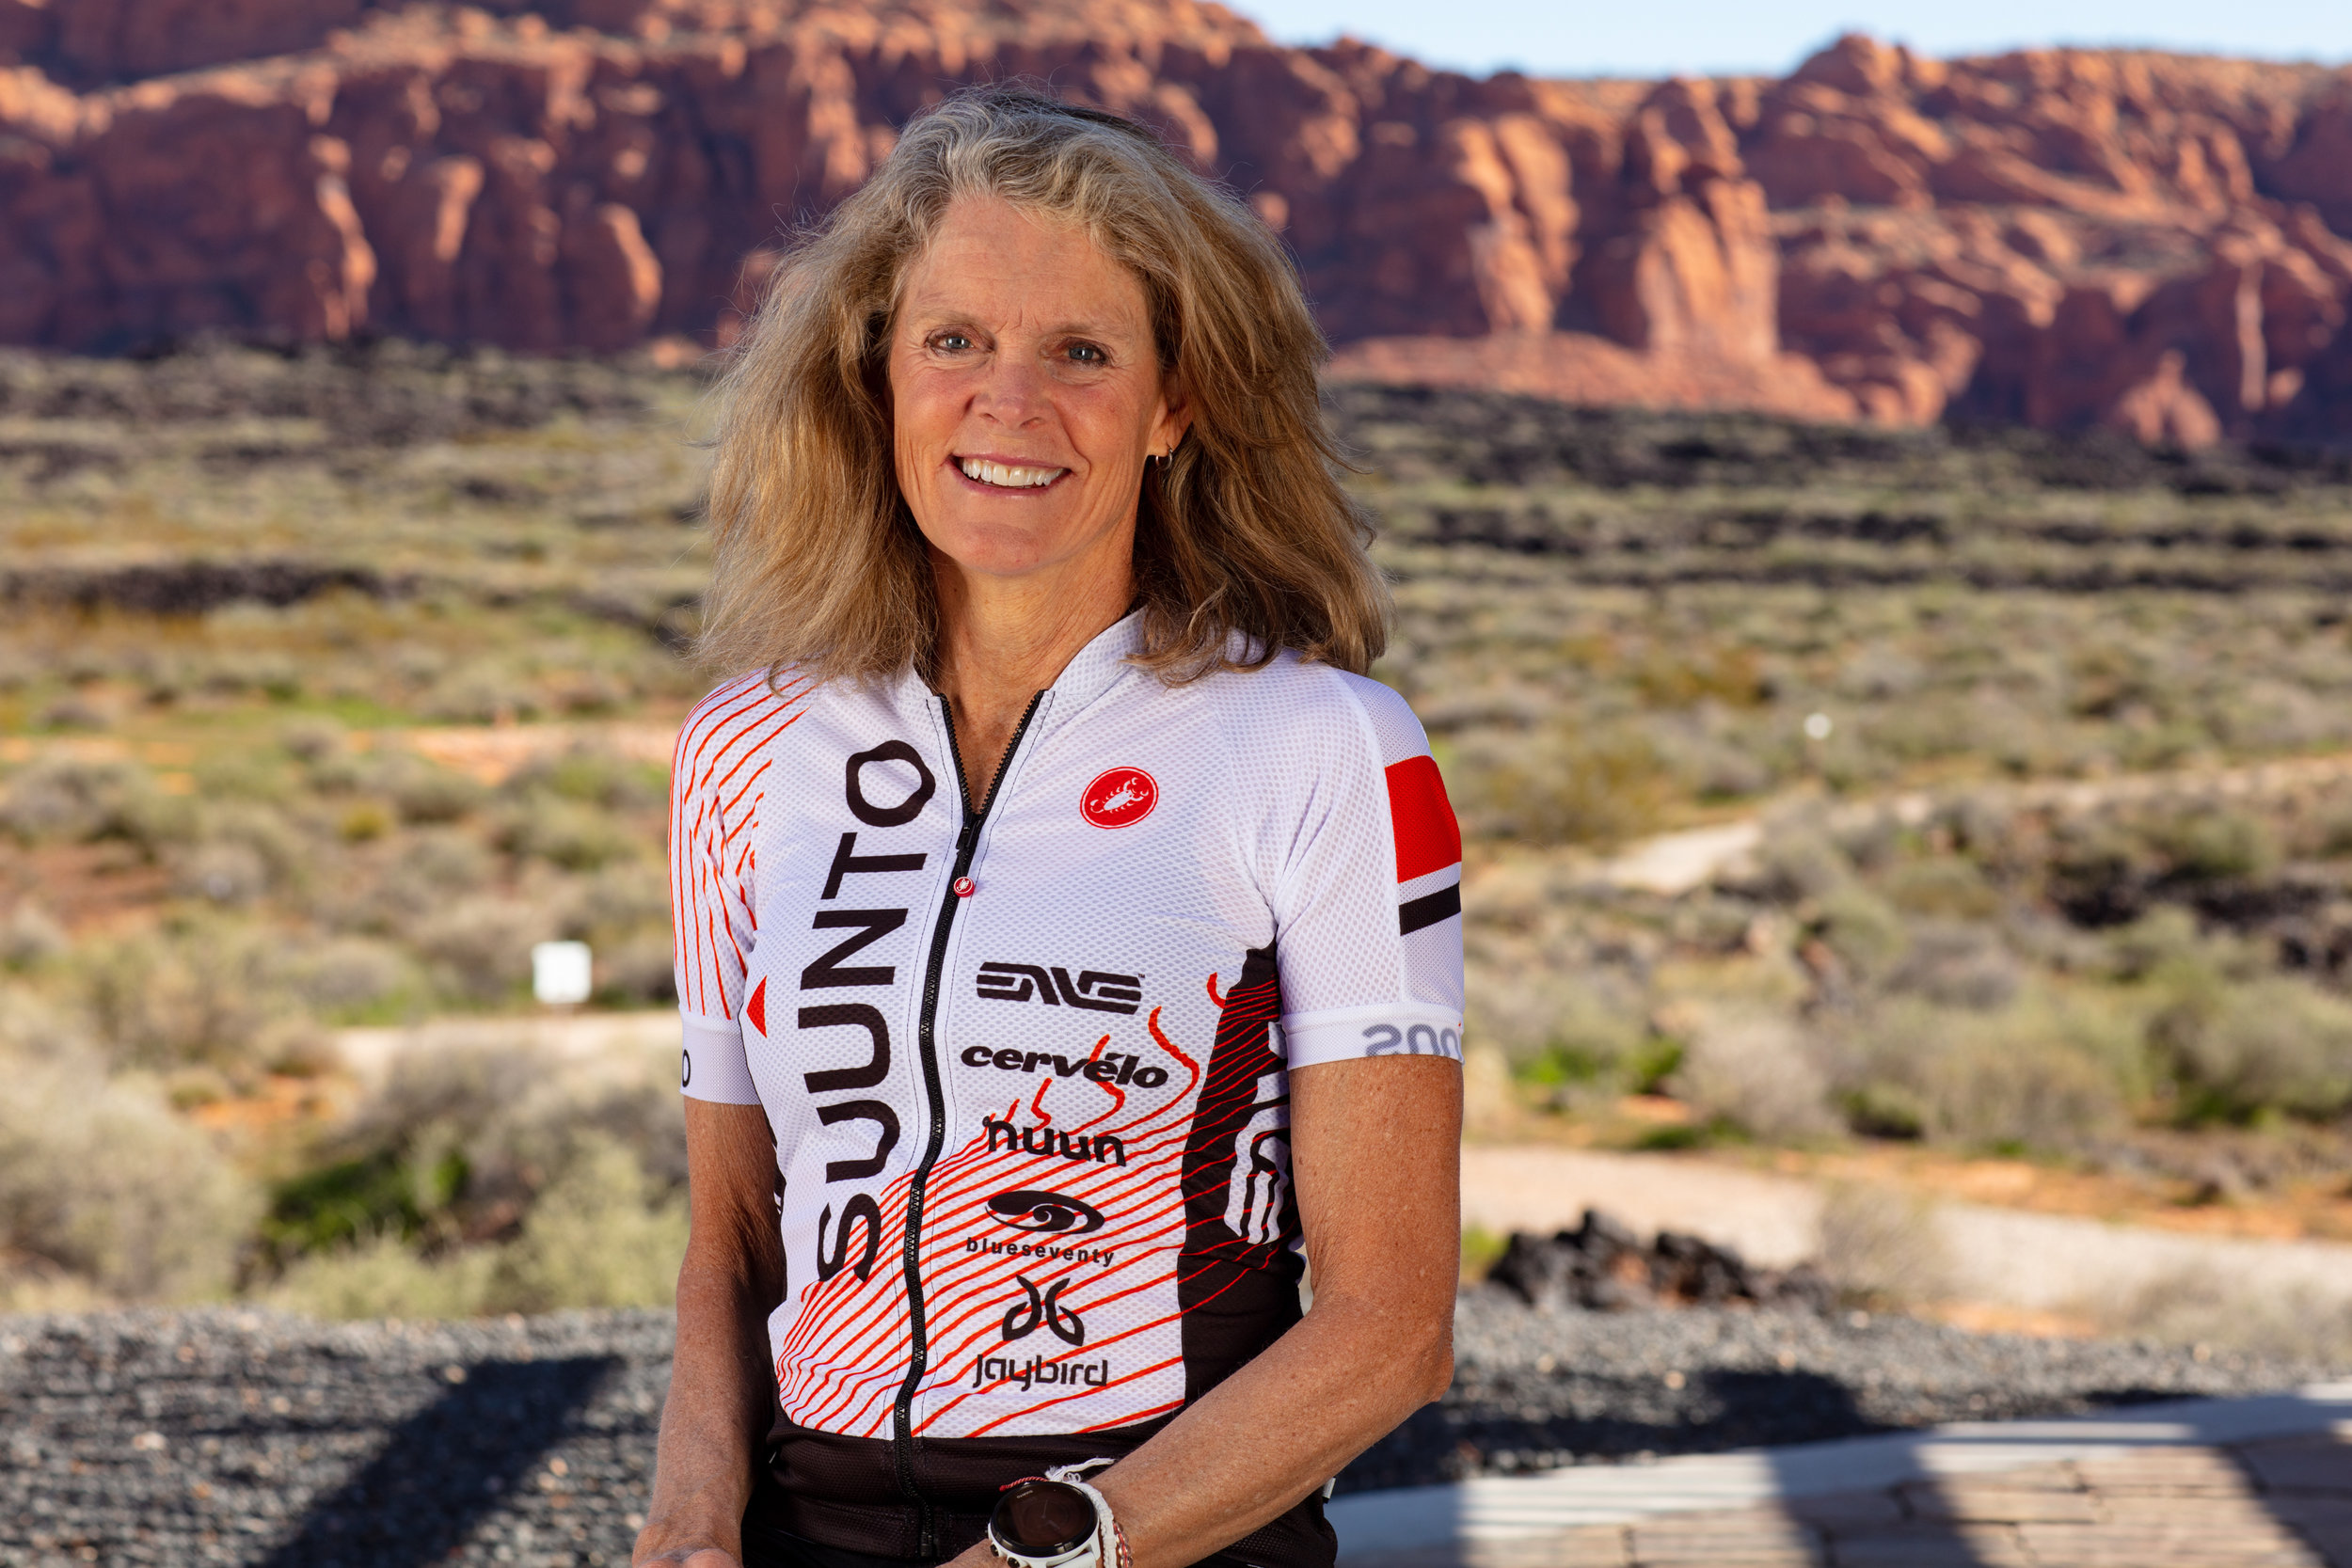 Ellen Hart   Hometown:  Denver, CO   Sport:  Triathlon / Running / Biathlon     @ellenhart58